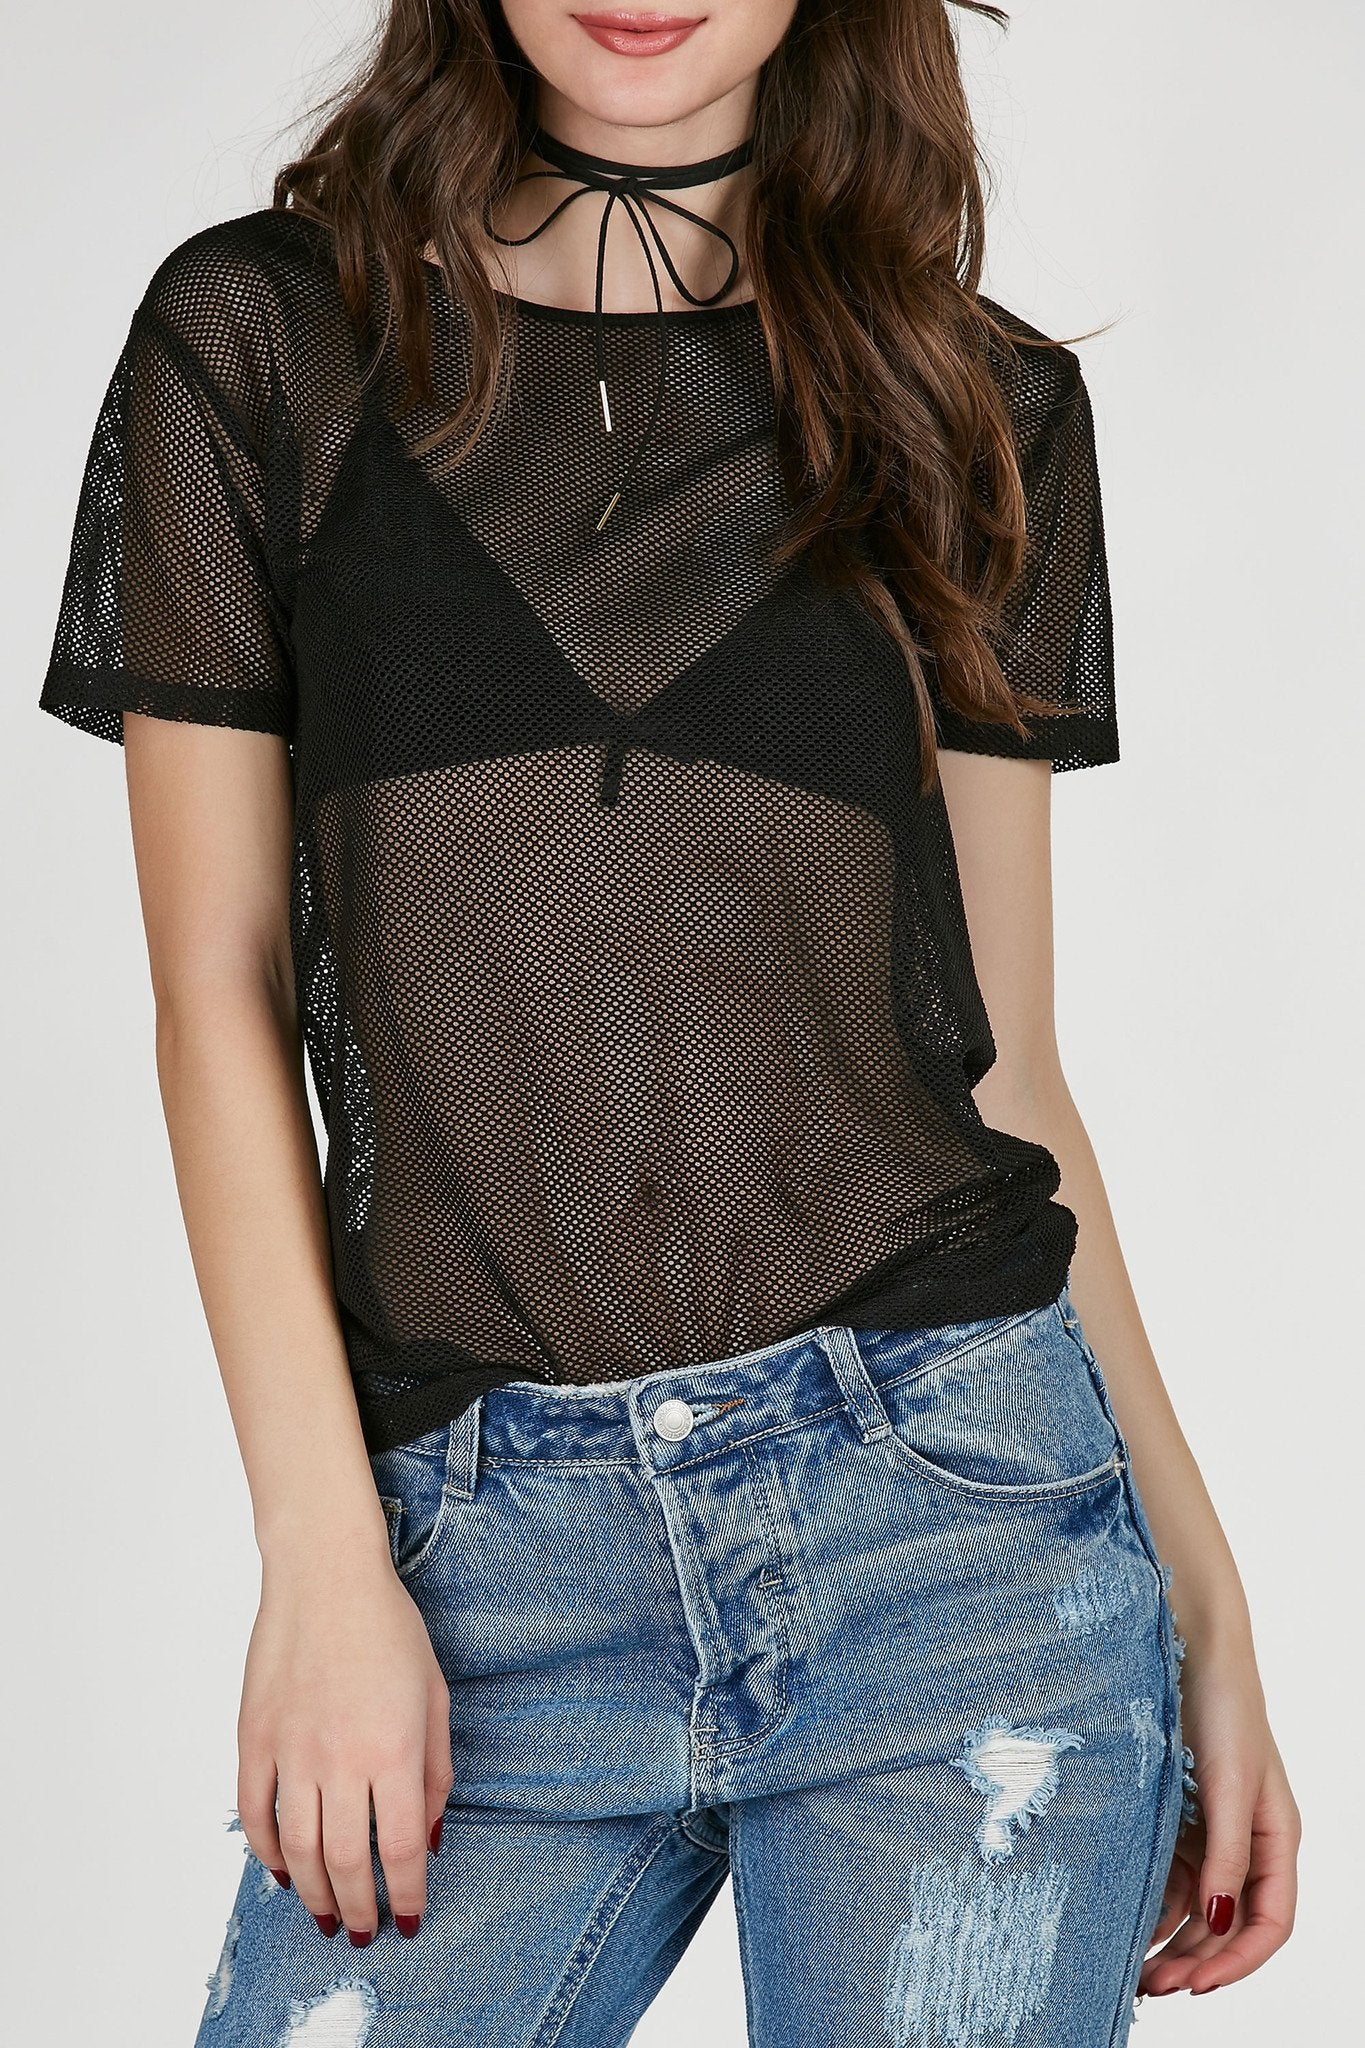 Round neck fishnet top with relaxed fit. Short sleeves and straight hem all around.